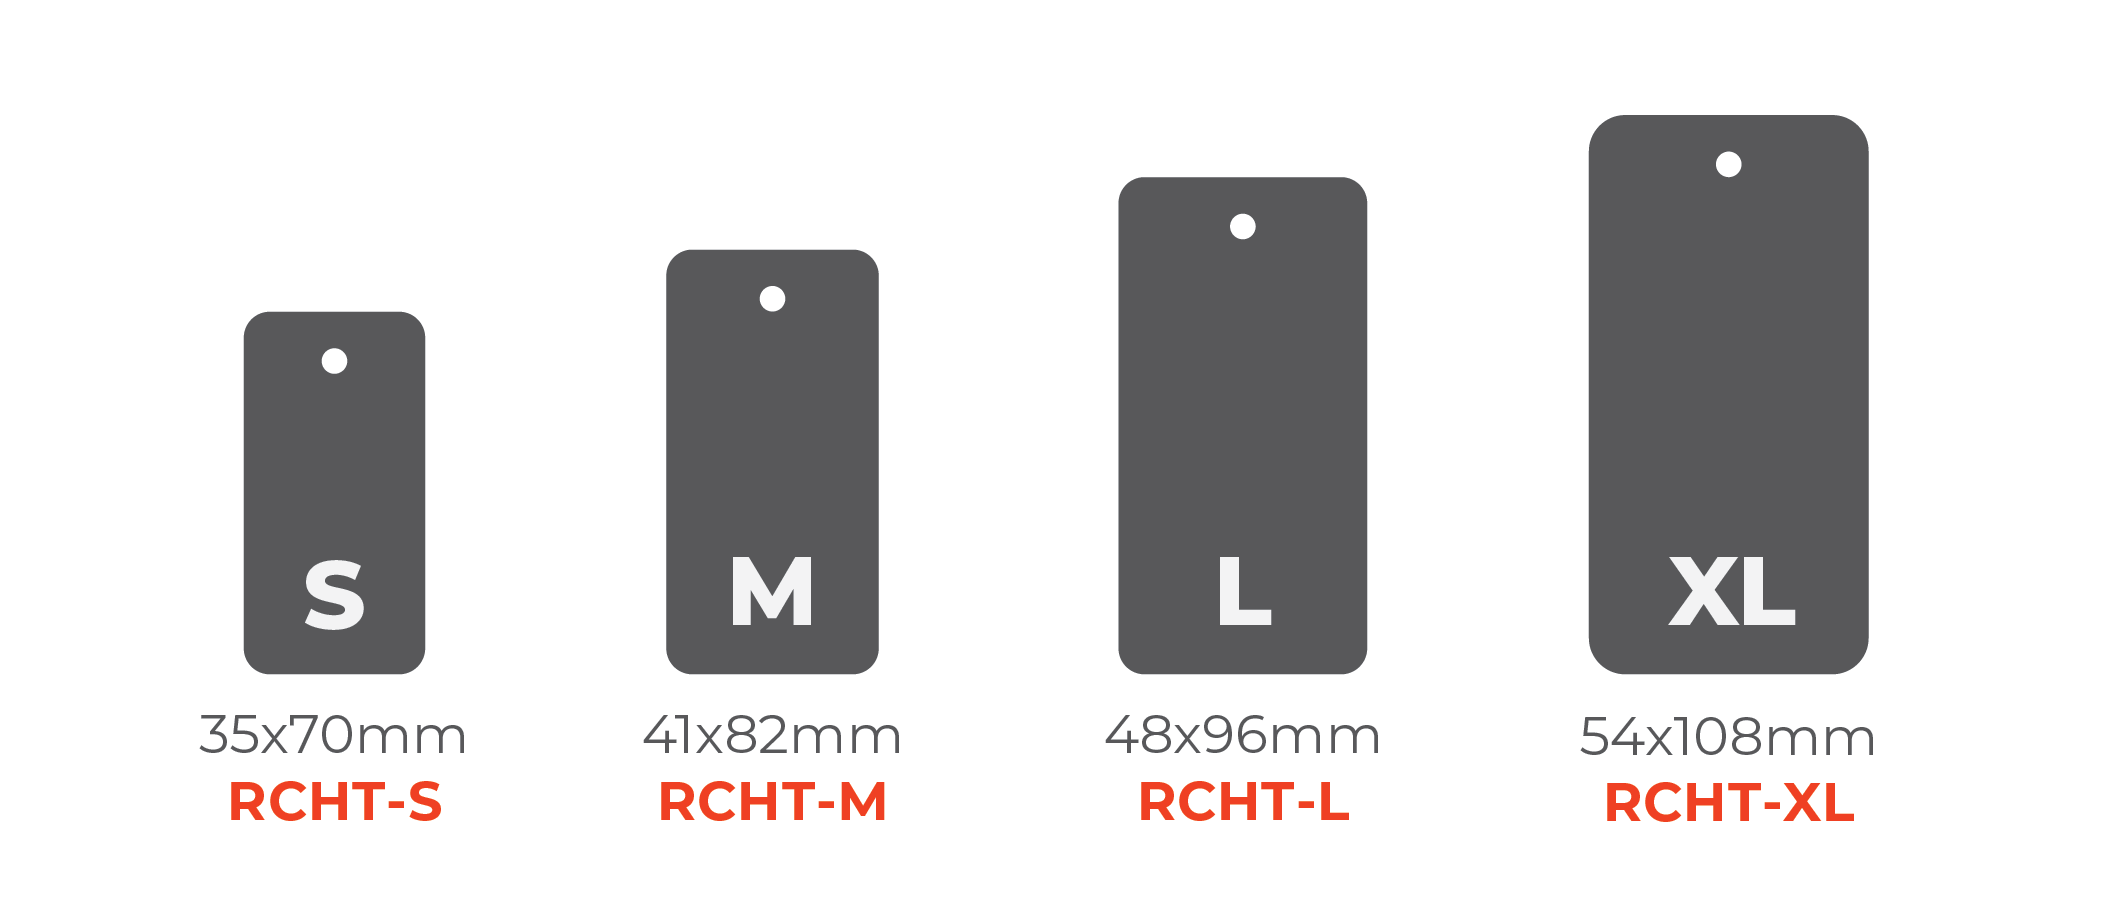 Double Pasted Hang Tags - Round Corner Tags 0x0mm 01 Image